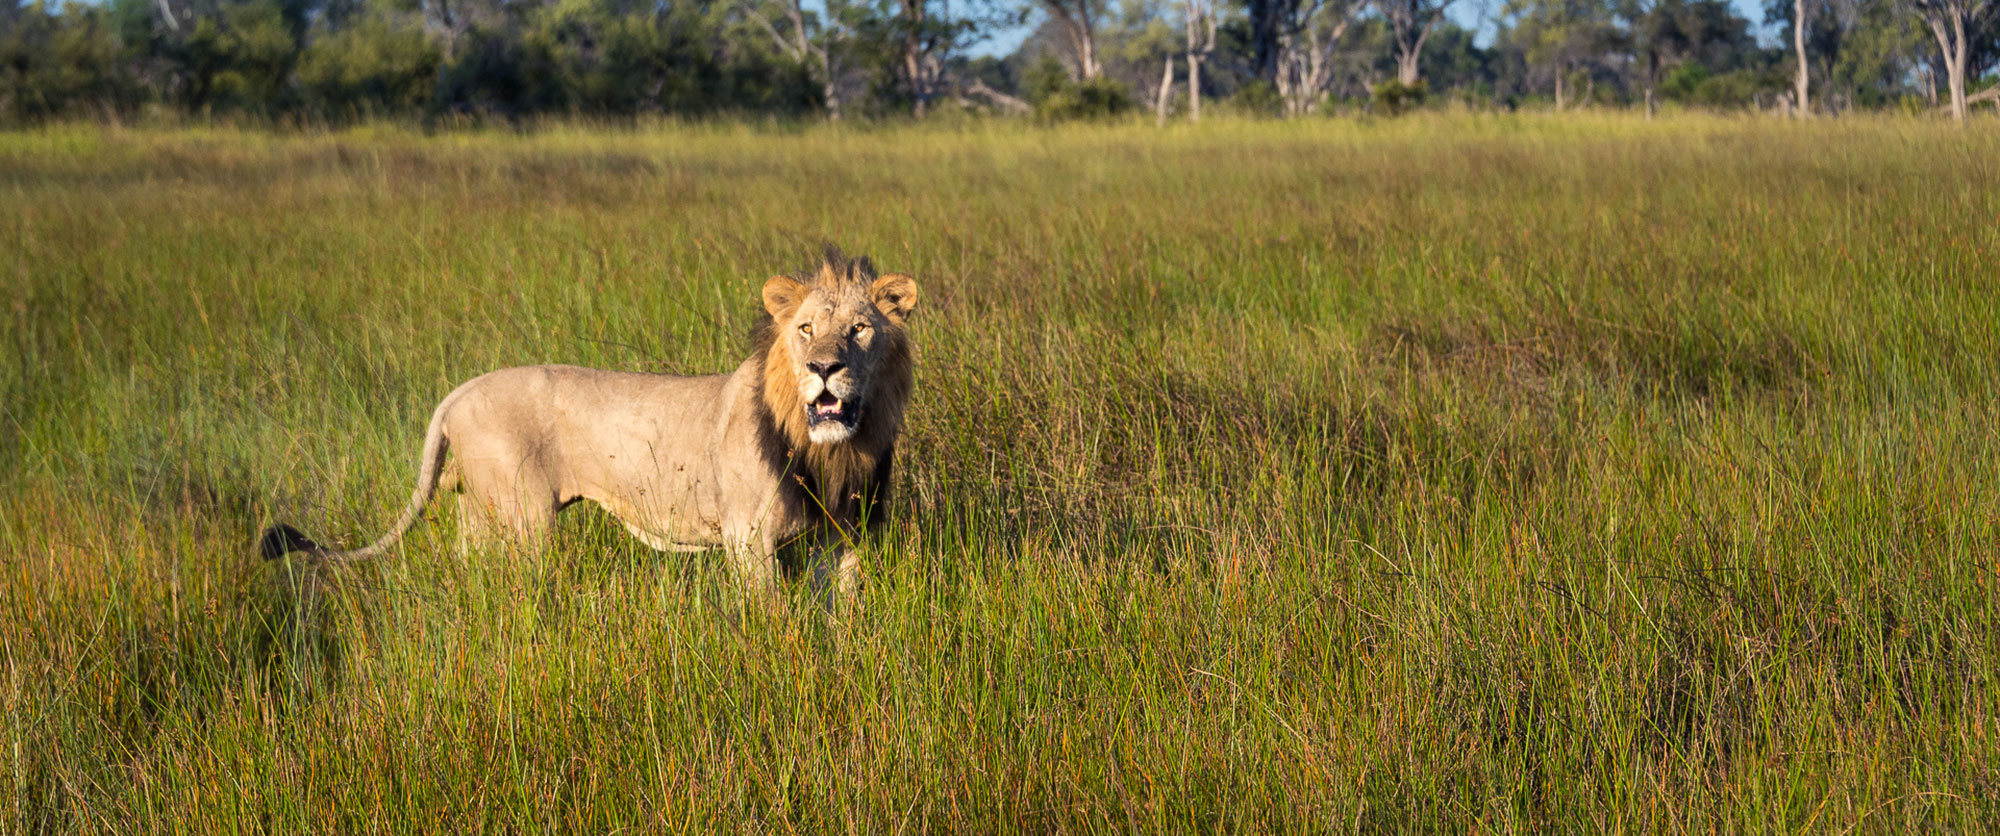 Lion spotted on an Okavango Delta safari at Vumbura Camp, Botswana